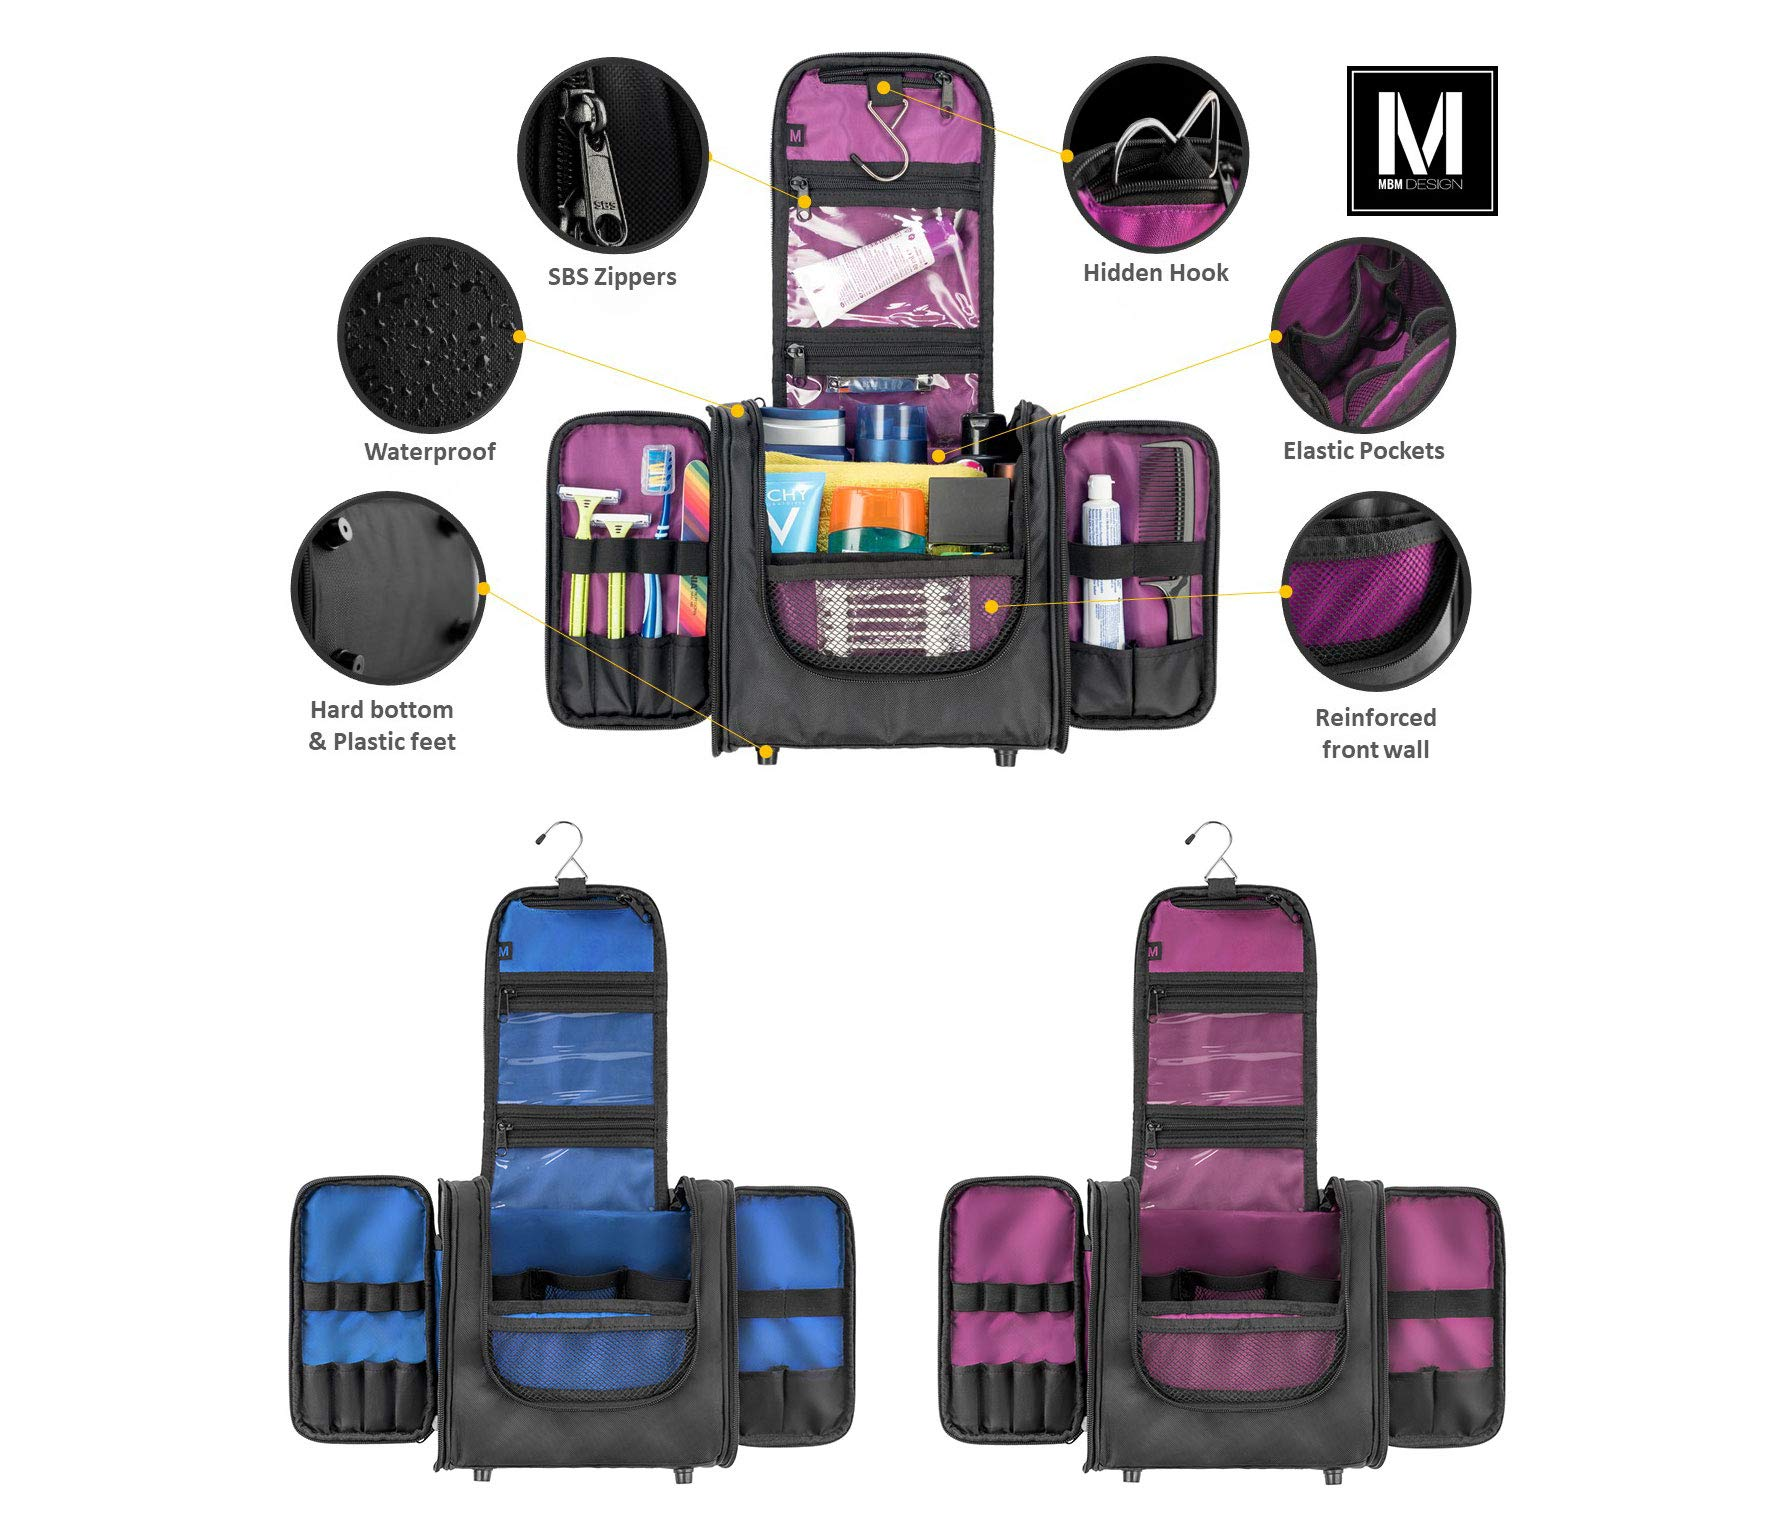 Hanging Toiletry Bag for Women and Men, Cosmetics Travel Bag, Secures Travel and Full-Size Toiletries Inside Toiletry Kit, Attaches to Roller Bag by MBM Design by MBM Design